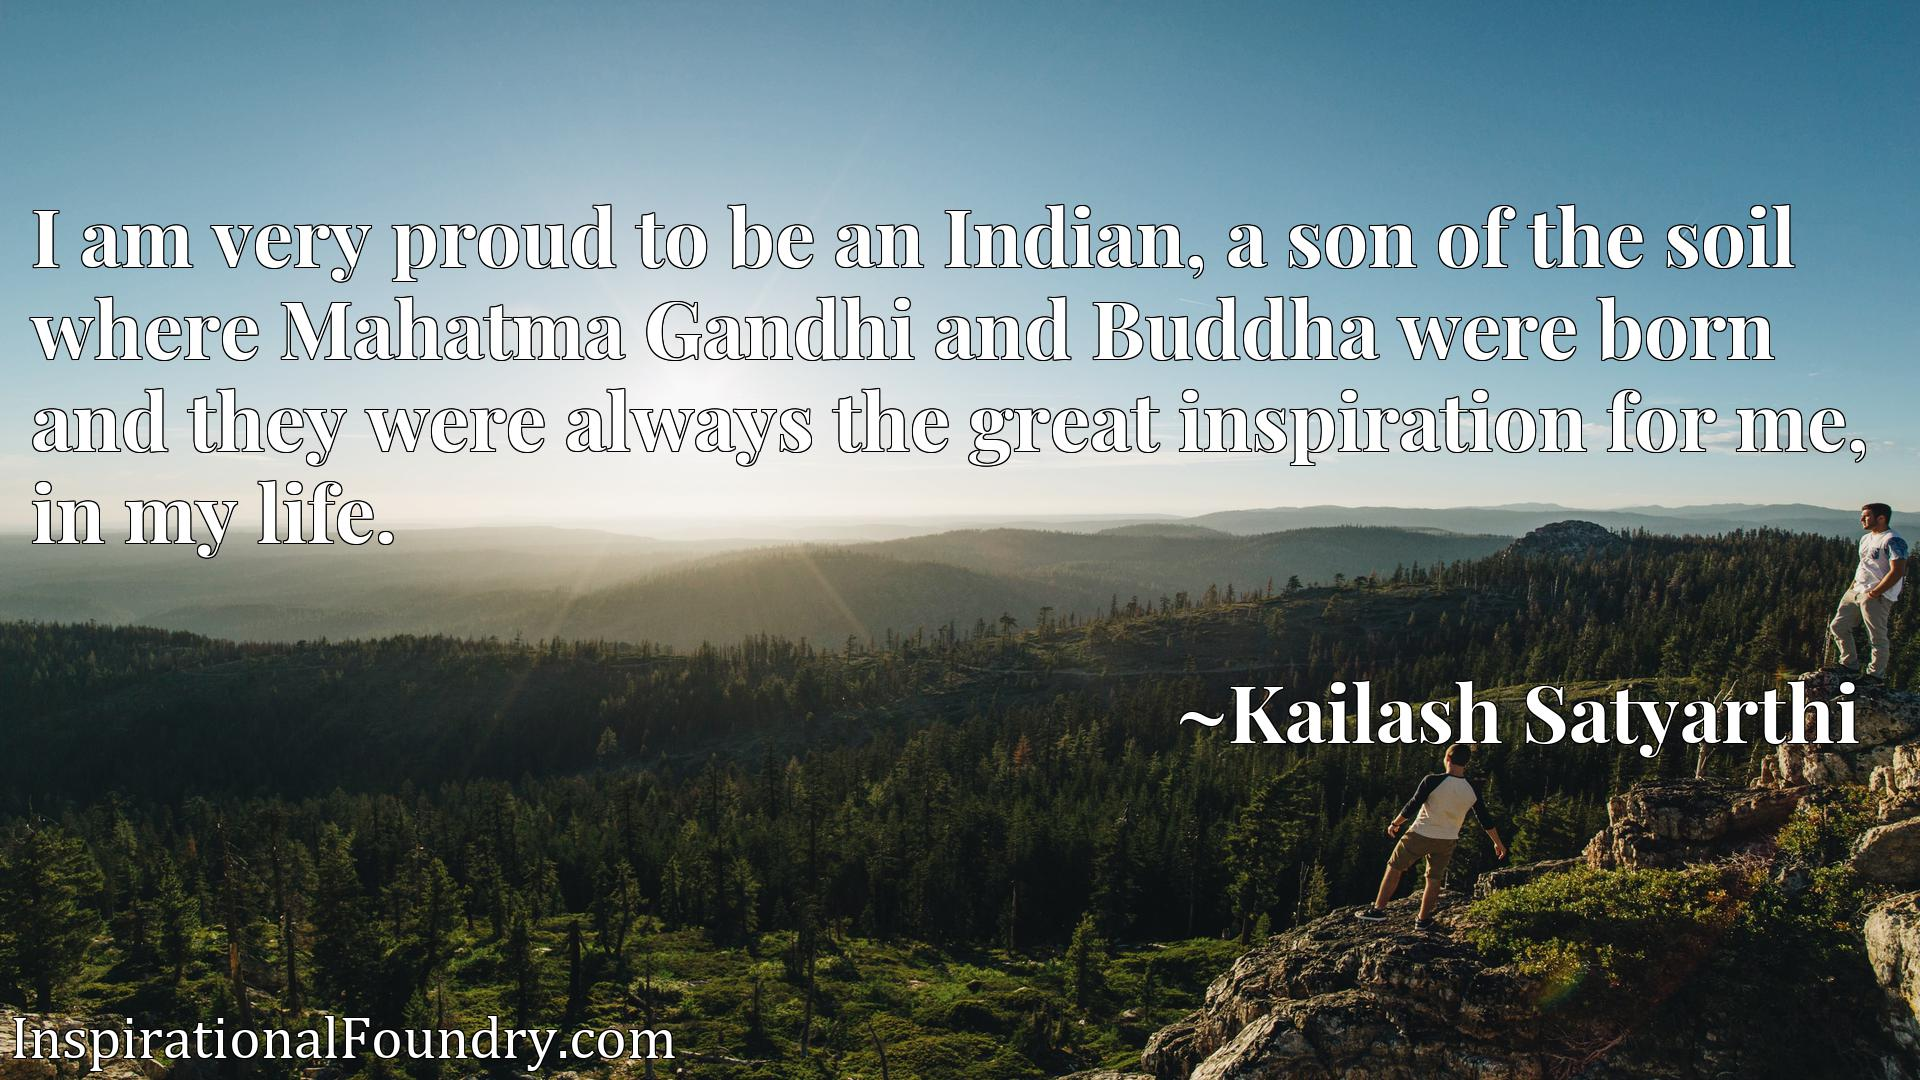 I am very proud to be an Indian, a son of the soil where Mahatma Gandhi and Buddha were born and they were always the great inspiration for me, in my life.